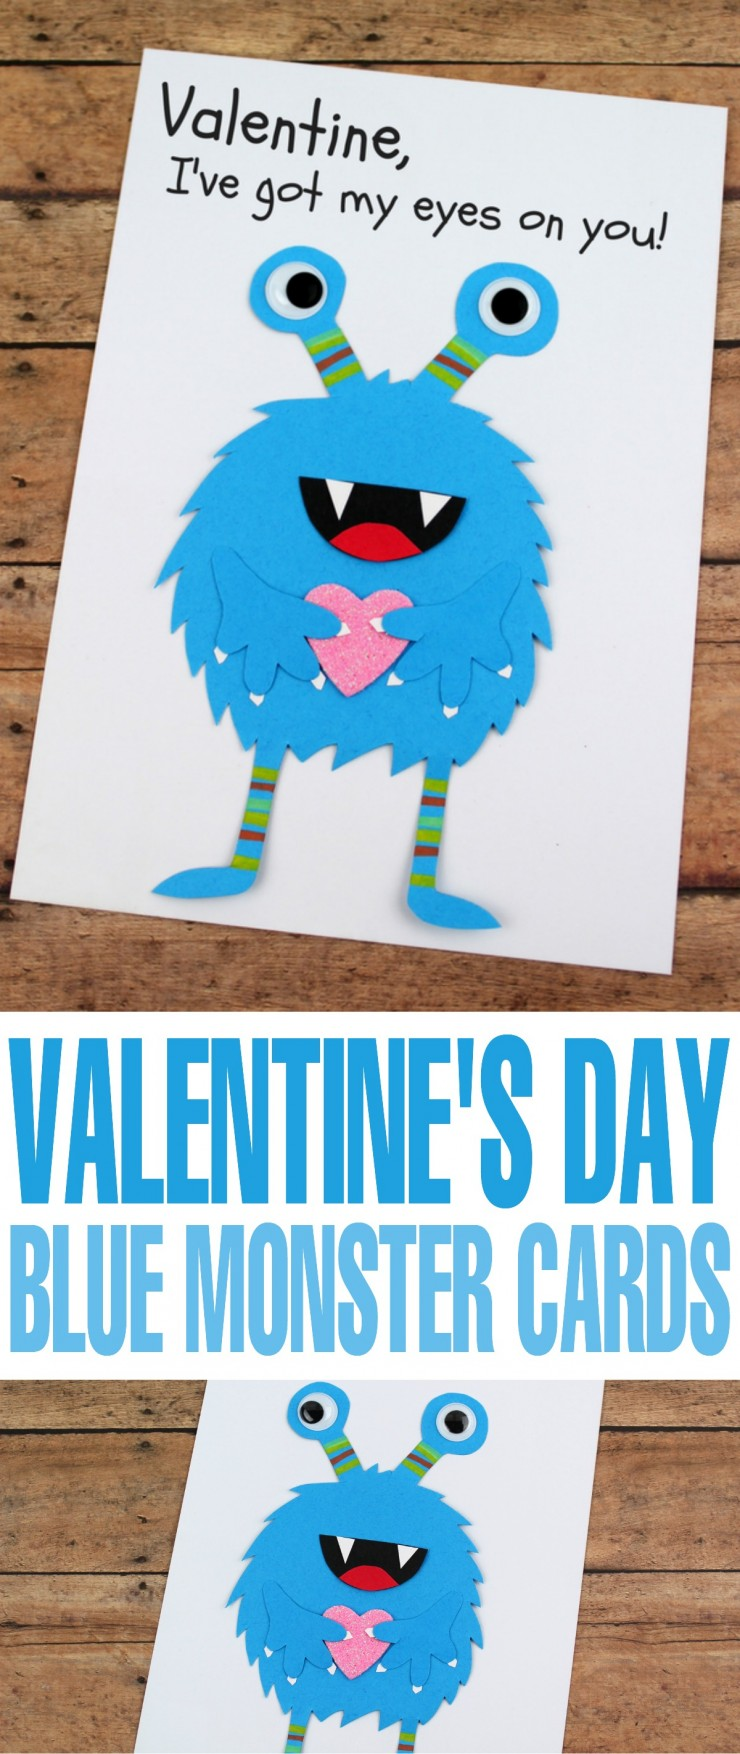 Valentine's Day is coming up and while it can be difficult to figure out how to treat your sweetheart, a hand made card is always going to be a hit. This DIY Valentine's Day Blue Monster Card is the perfect way to show your Valentine you think they are a scream!